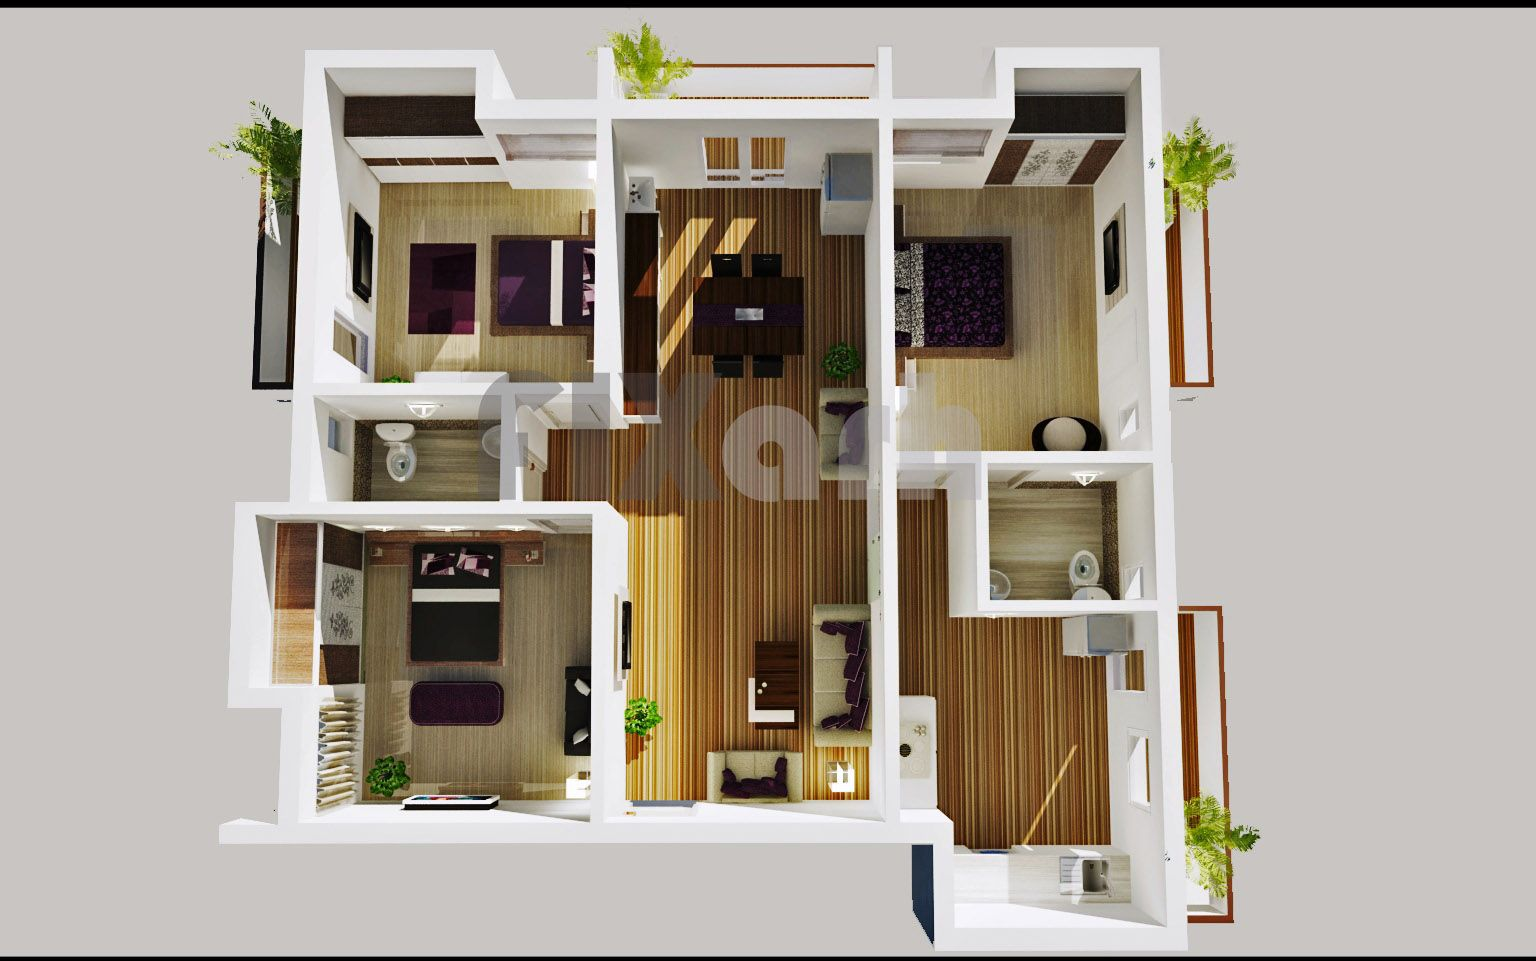 3d 3 bedroom house plans - House 3 Bedroom Floor Plans 3d